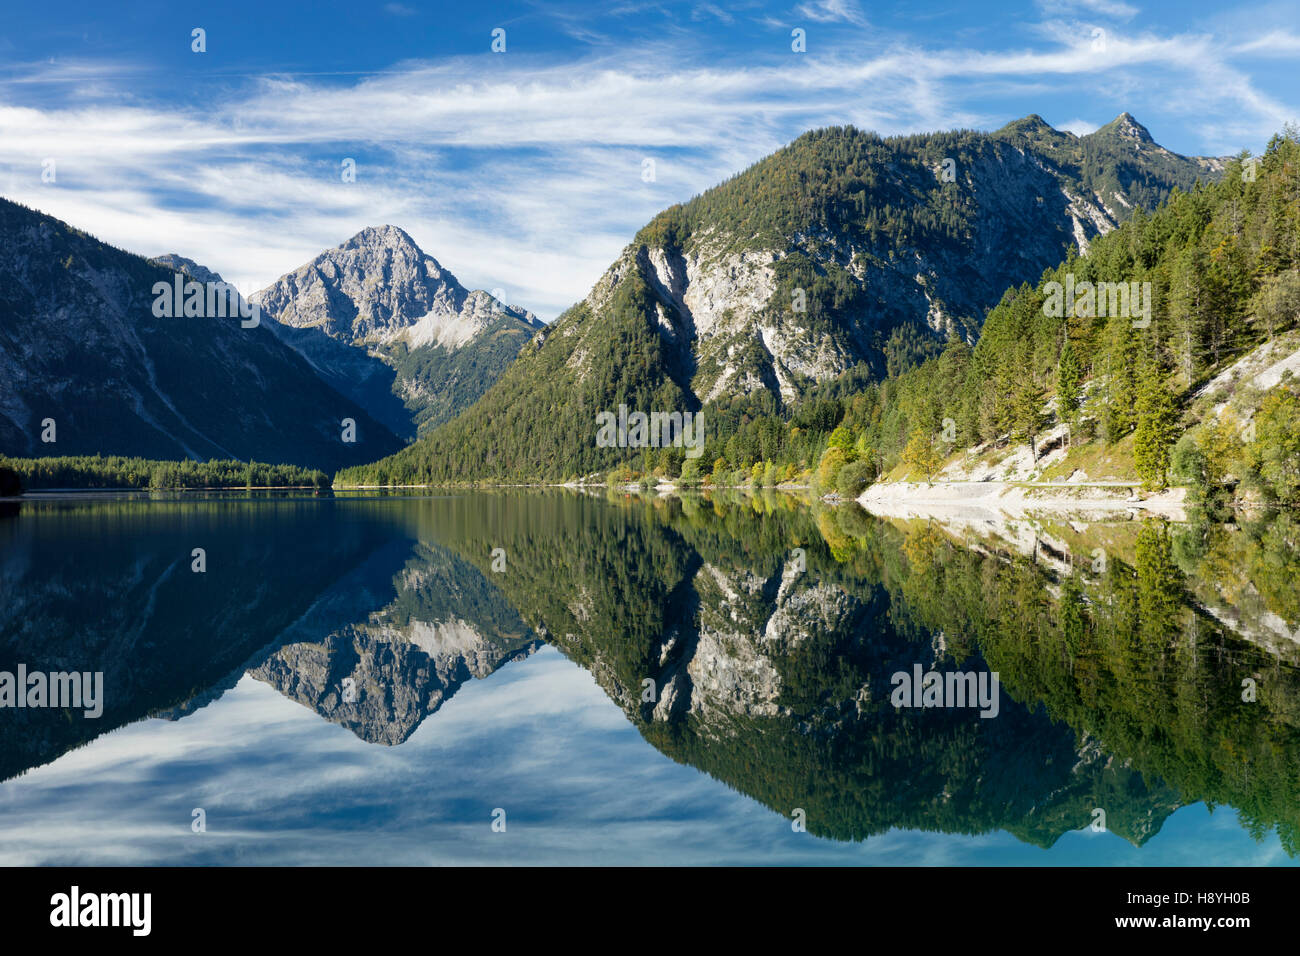 Tyrolean Alps reflected in Plansee, Tyrol, Austria Stock Photo